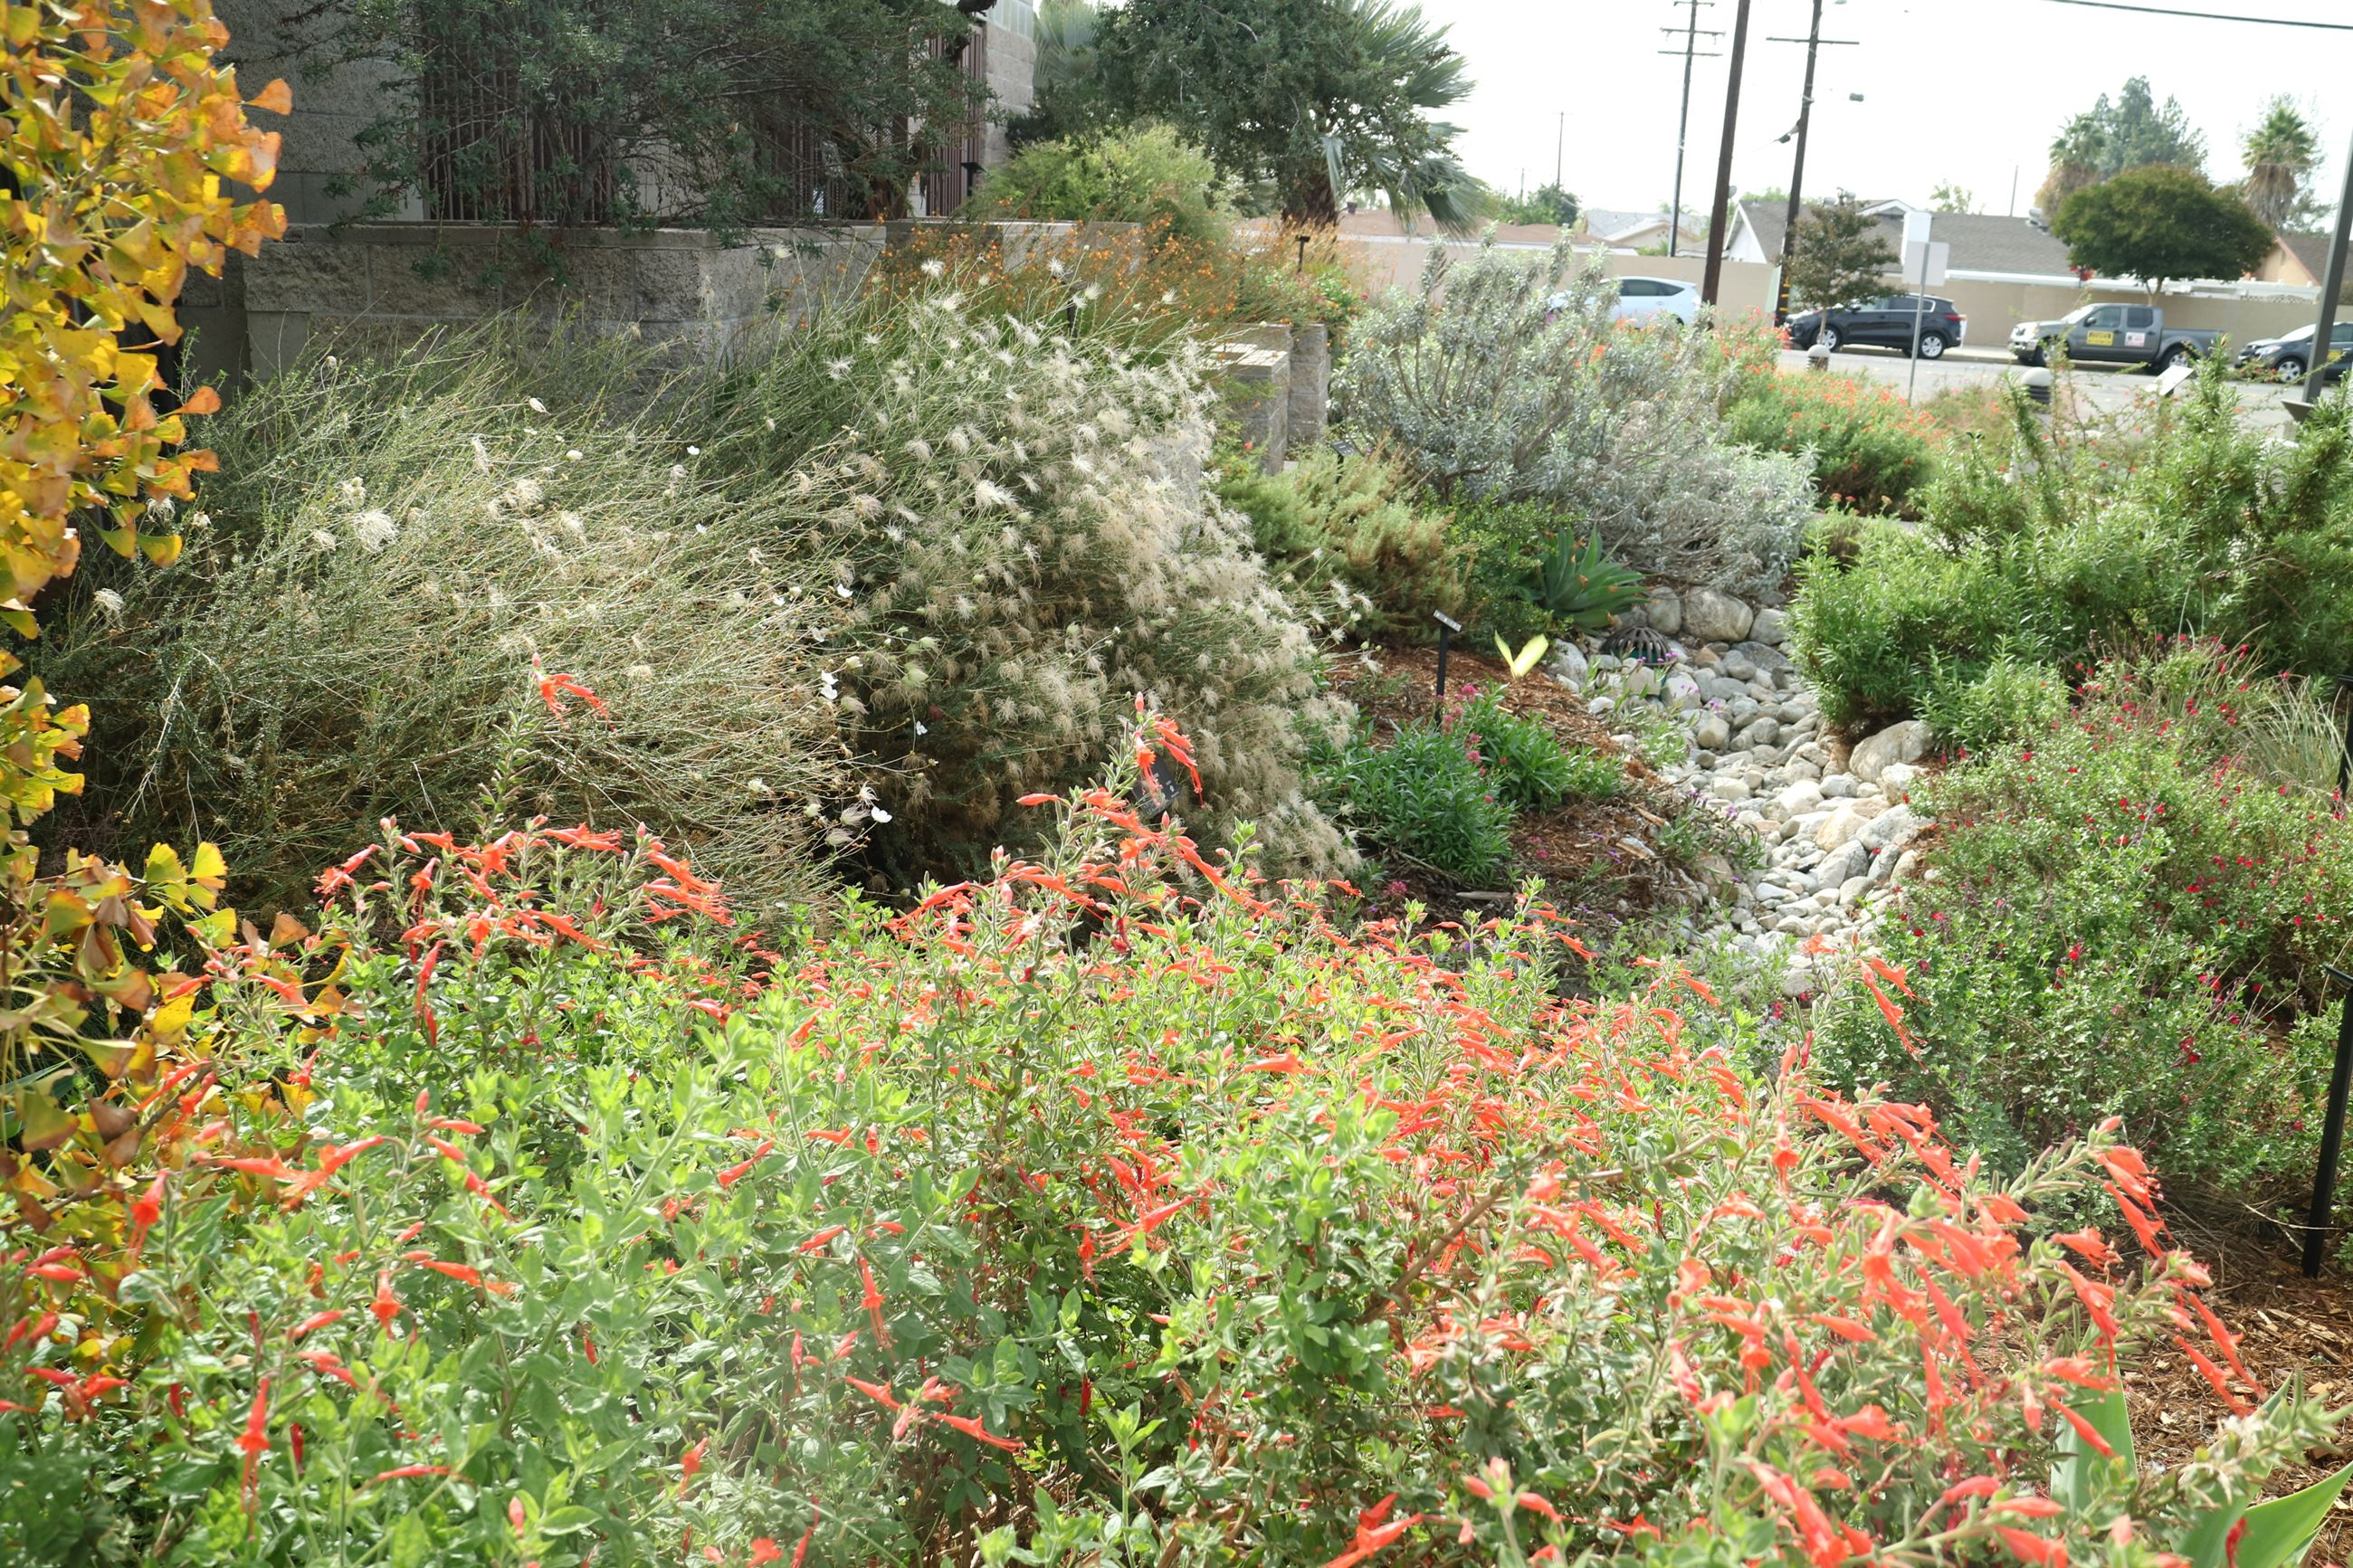 A demonstration garden at the Waterwise Community Center